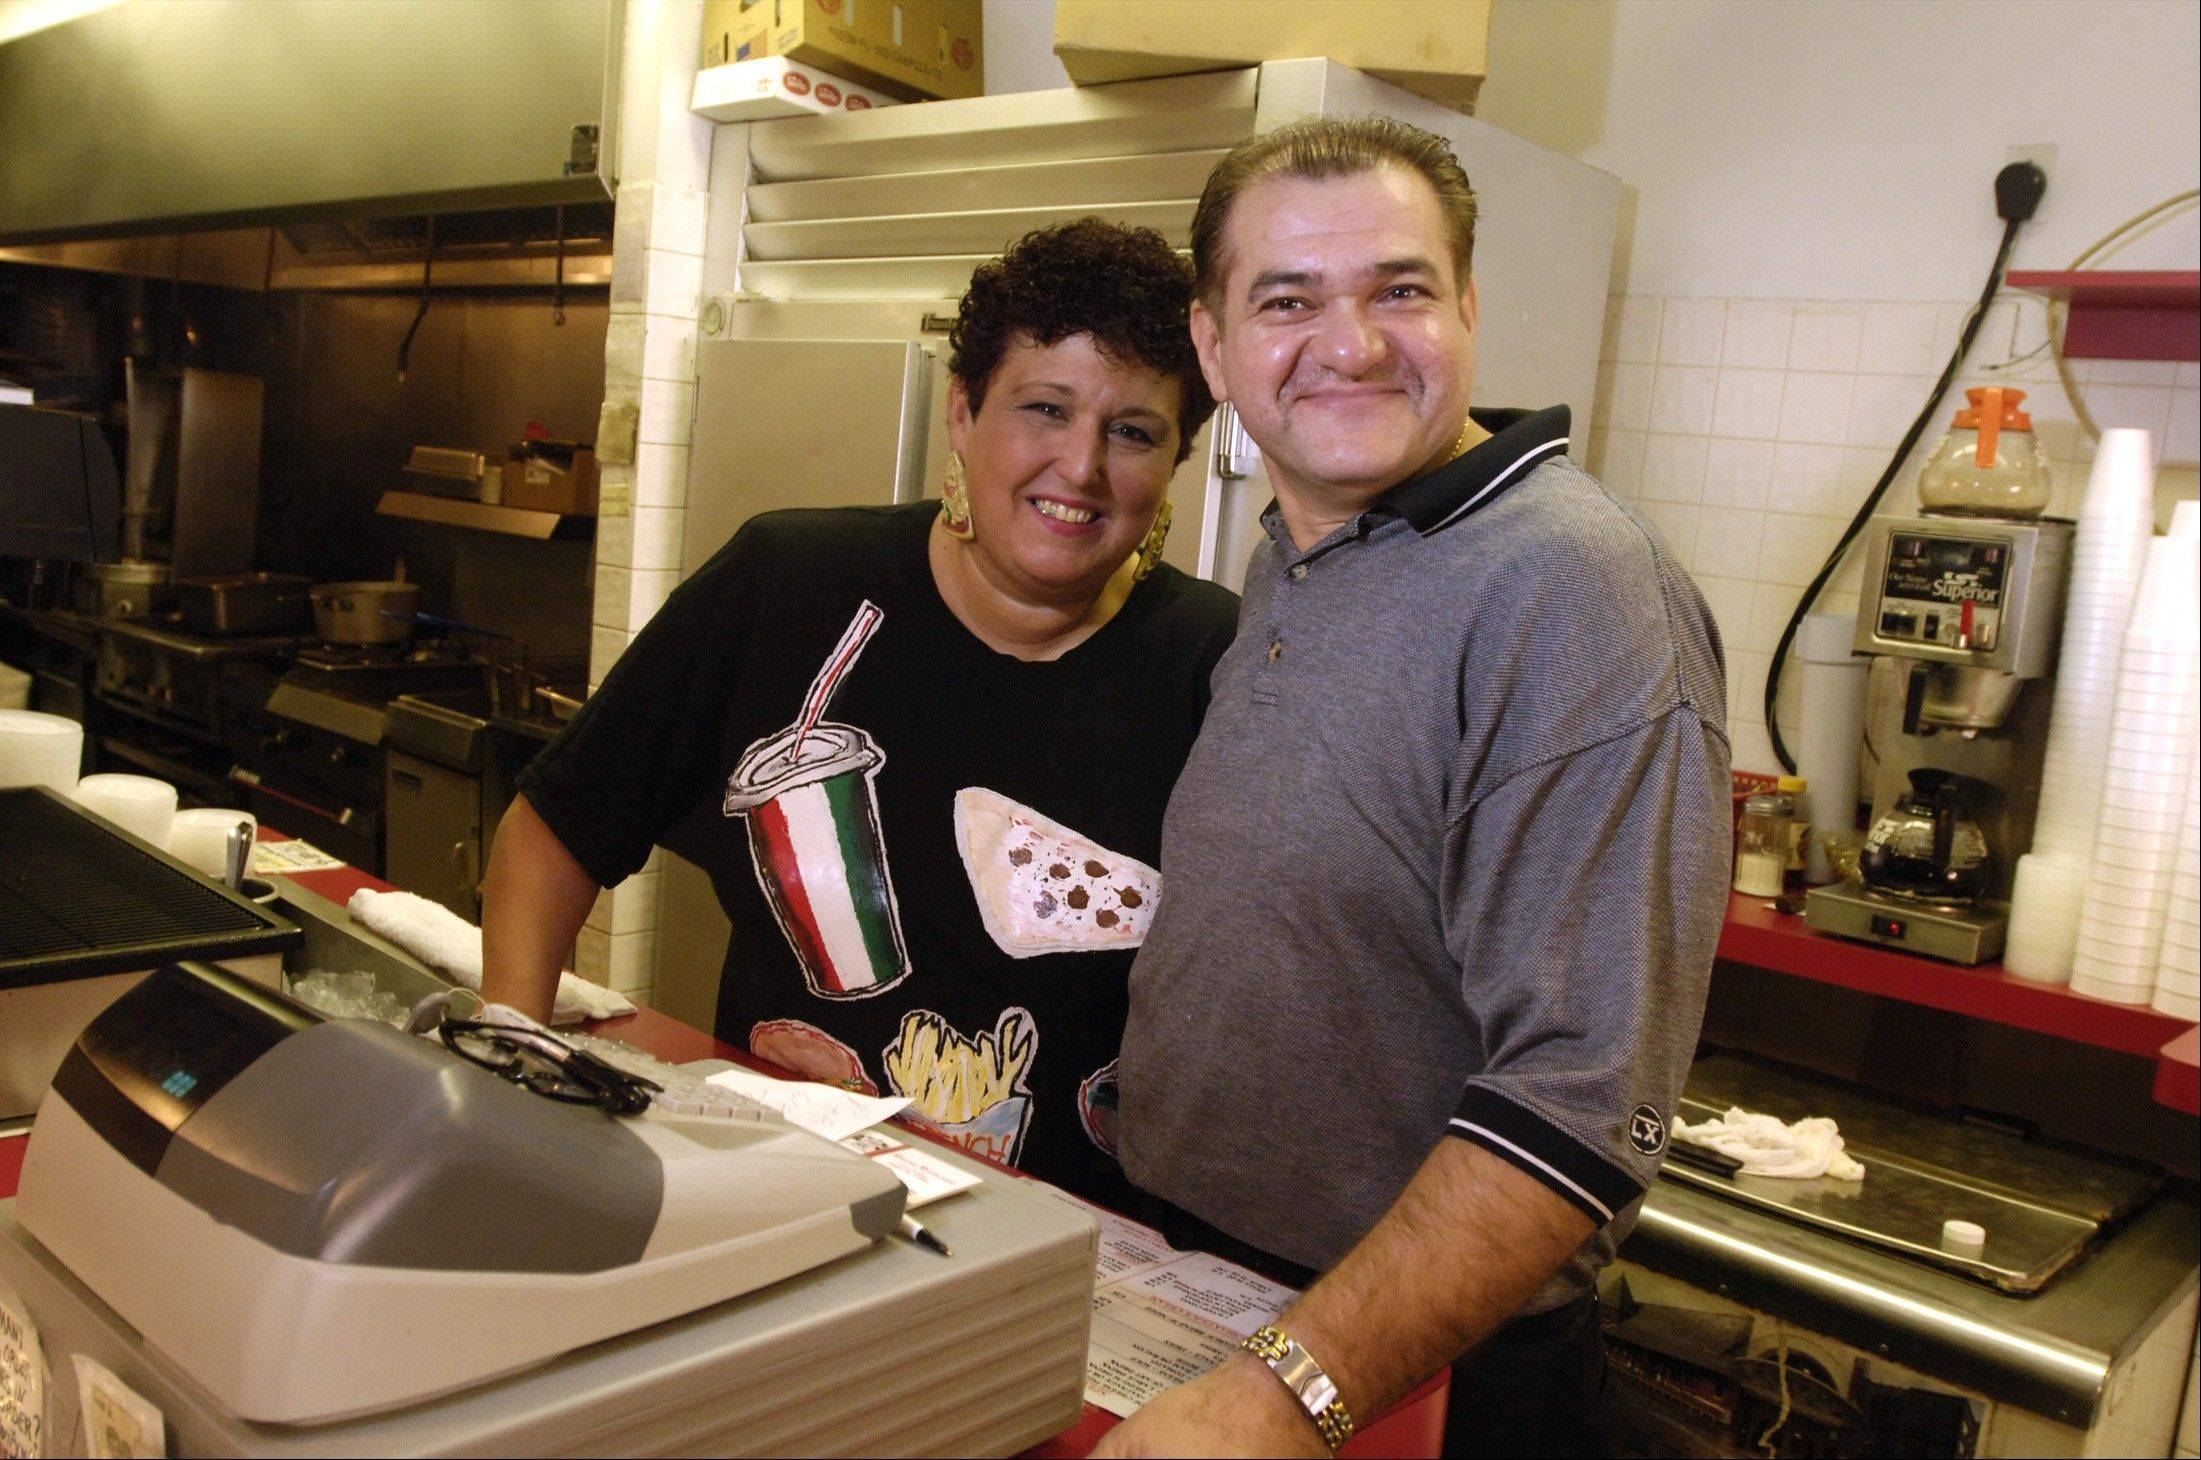 Andrea and Bobby Tsambarlis, founded the Riviera Restaurant in downtown Arlington Heights. Now, the restaurant's latest owner is relaunching it as Campbell Street Hot Dogs 'N' More, hearkening back to his earlier restaurant experience.